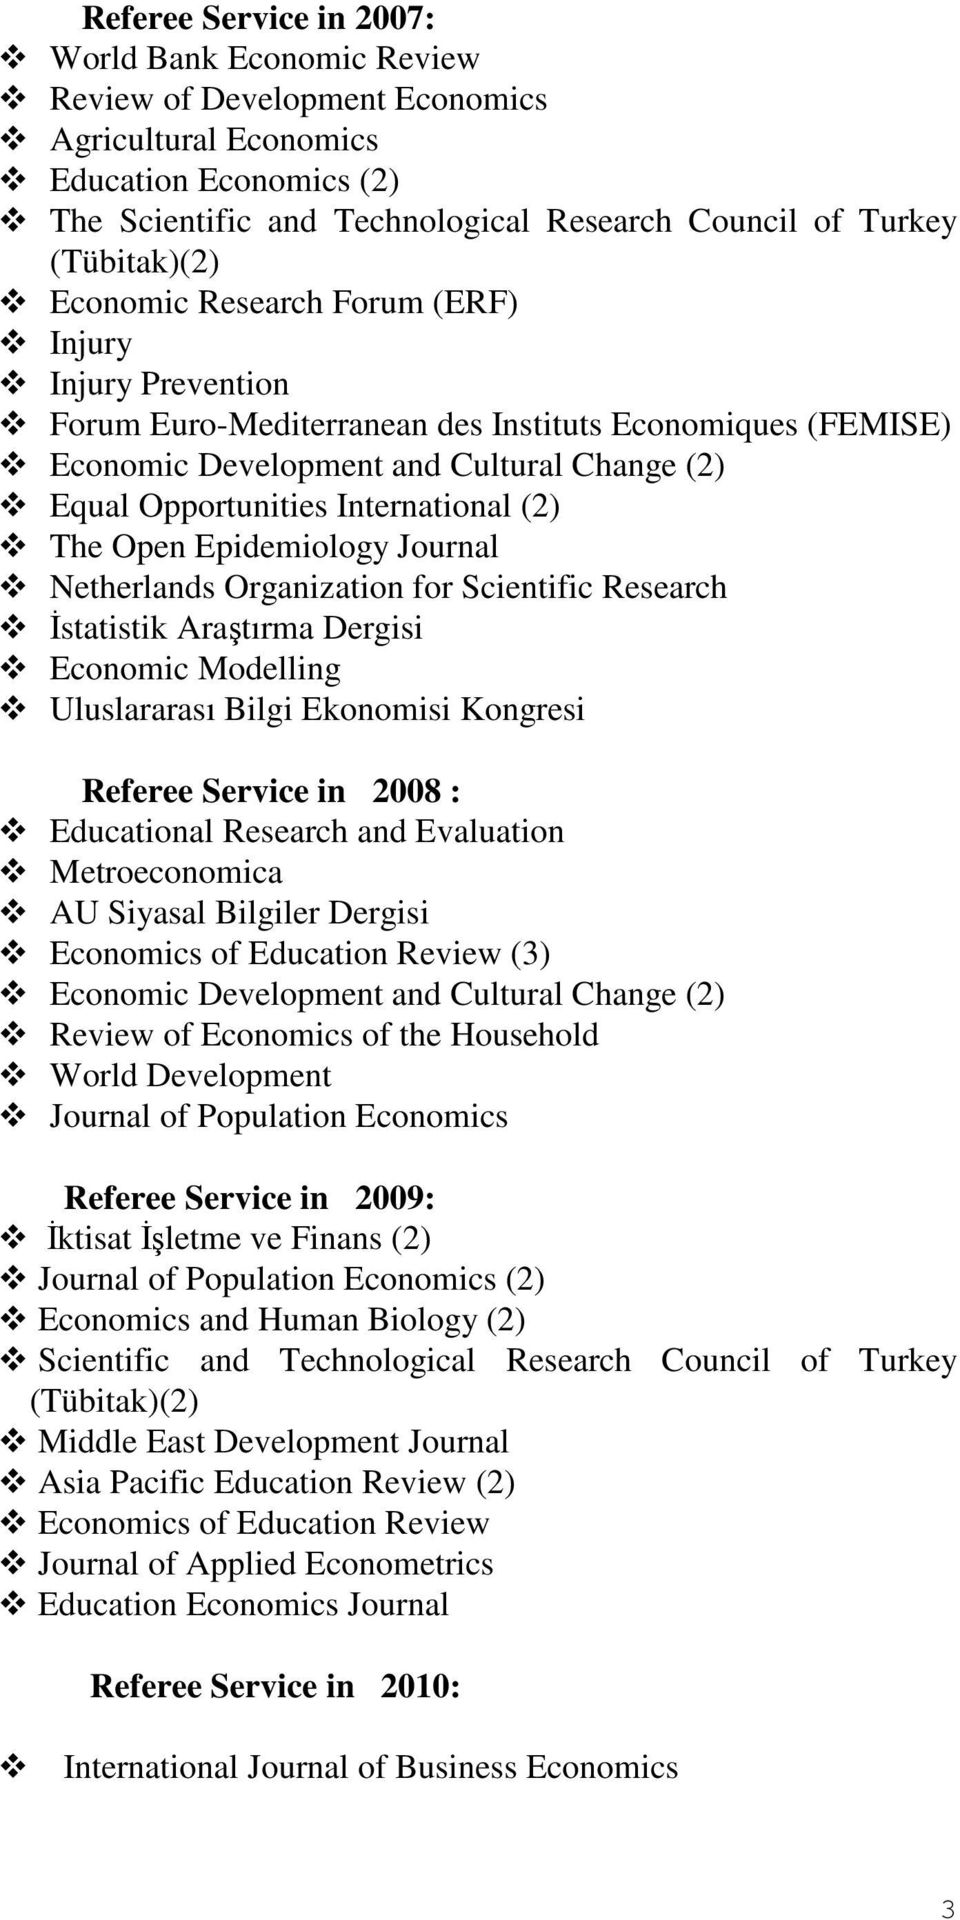 International (2) The Open Epidemiology Journal Netherlands Organization for Scientific Research İstatistik Araştırma Dergisi Economic Modelling Uluslararası Bilgi Ekonomisi Kongresi Referee Service